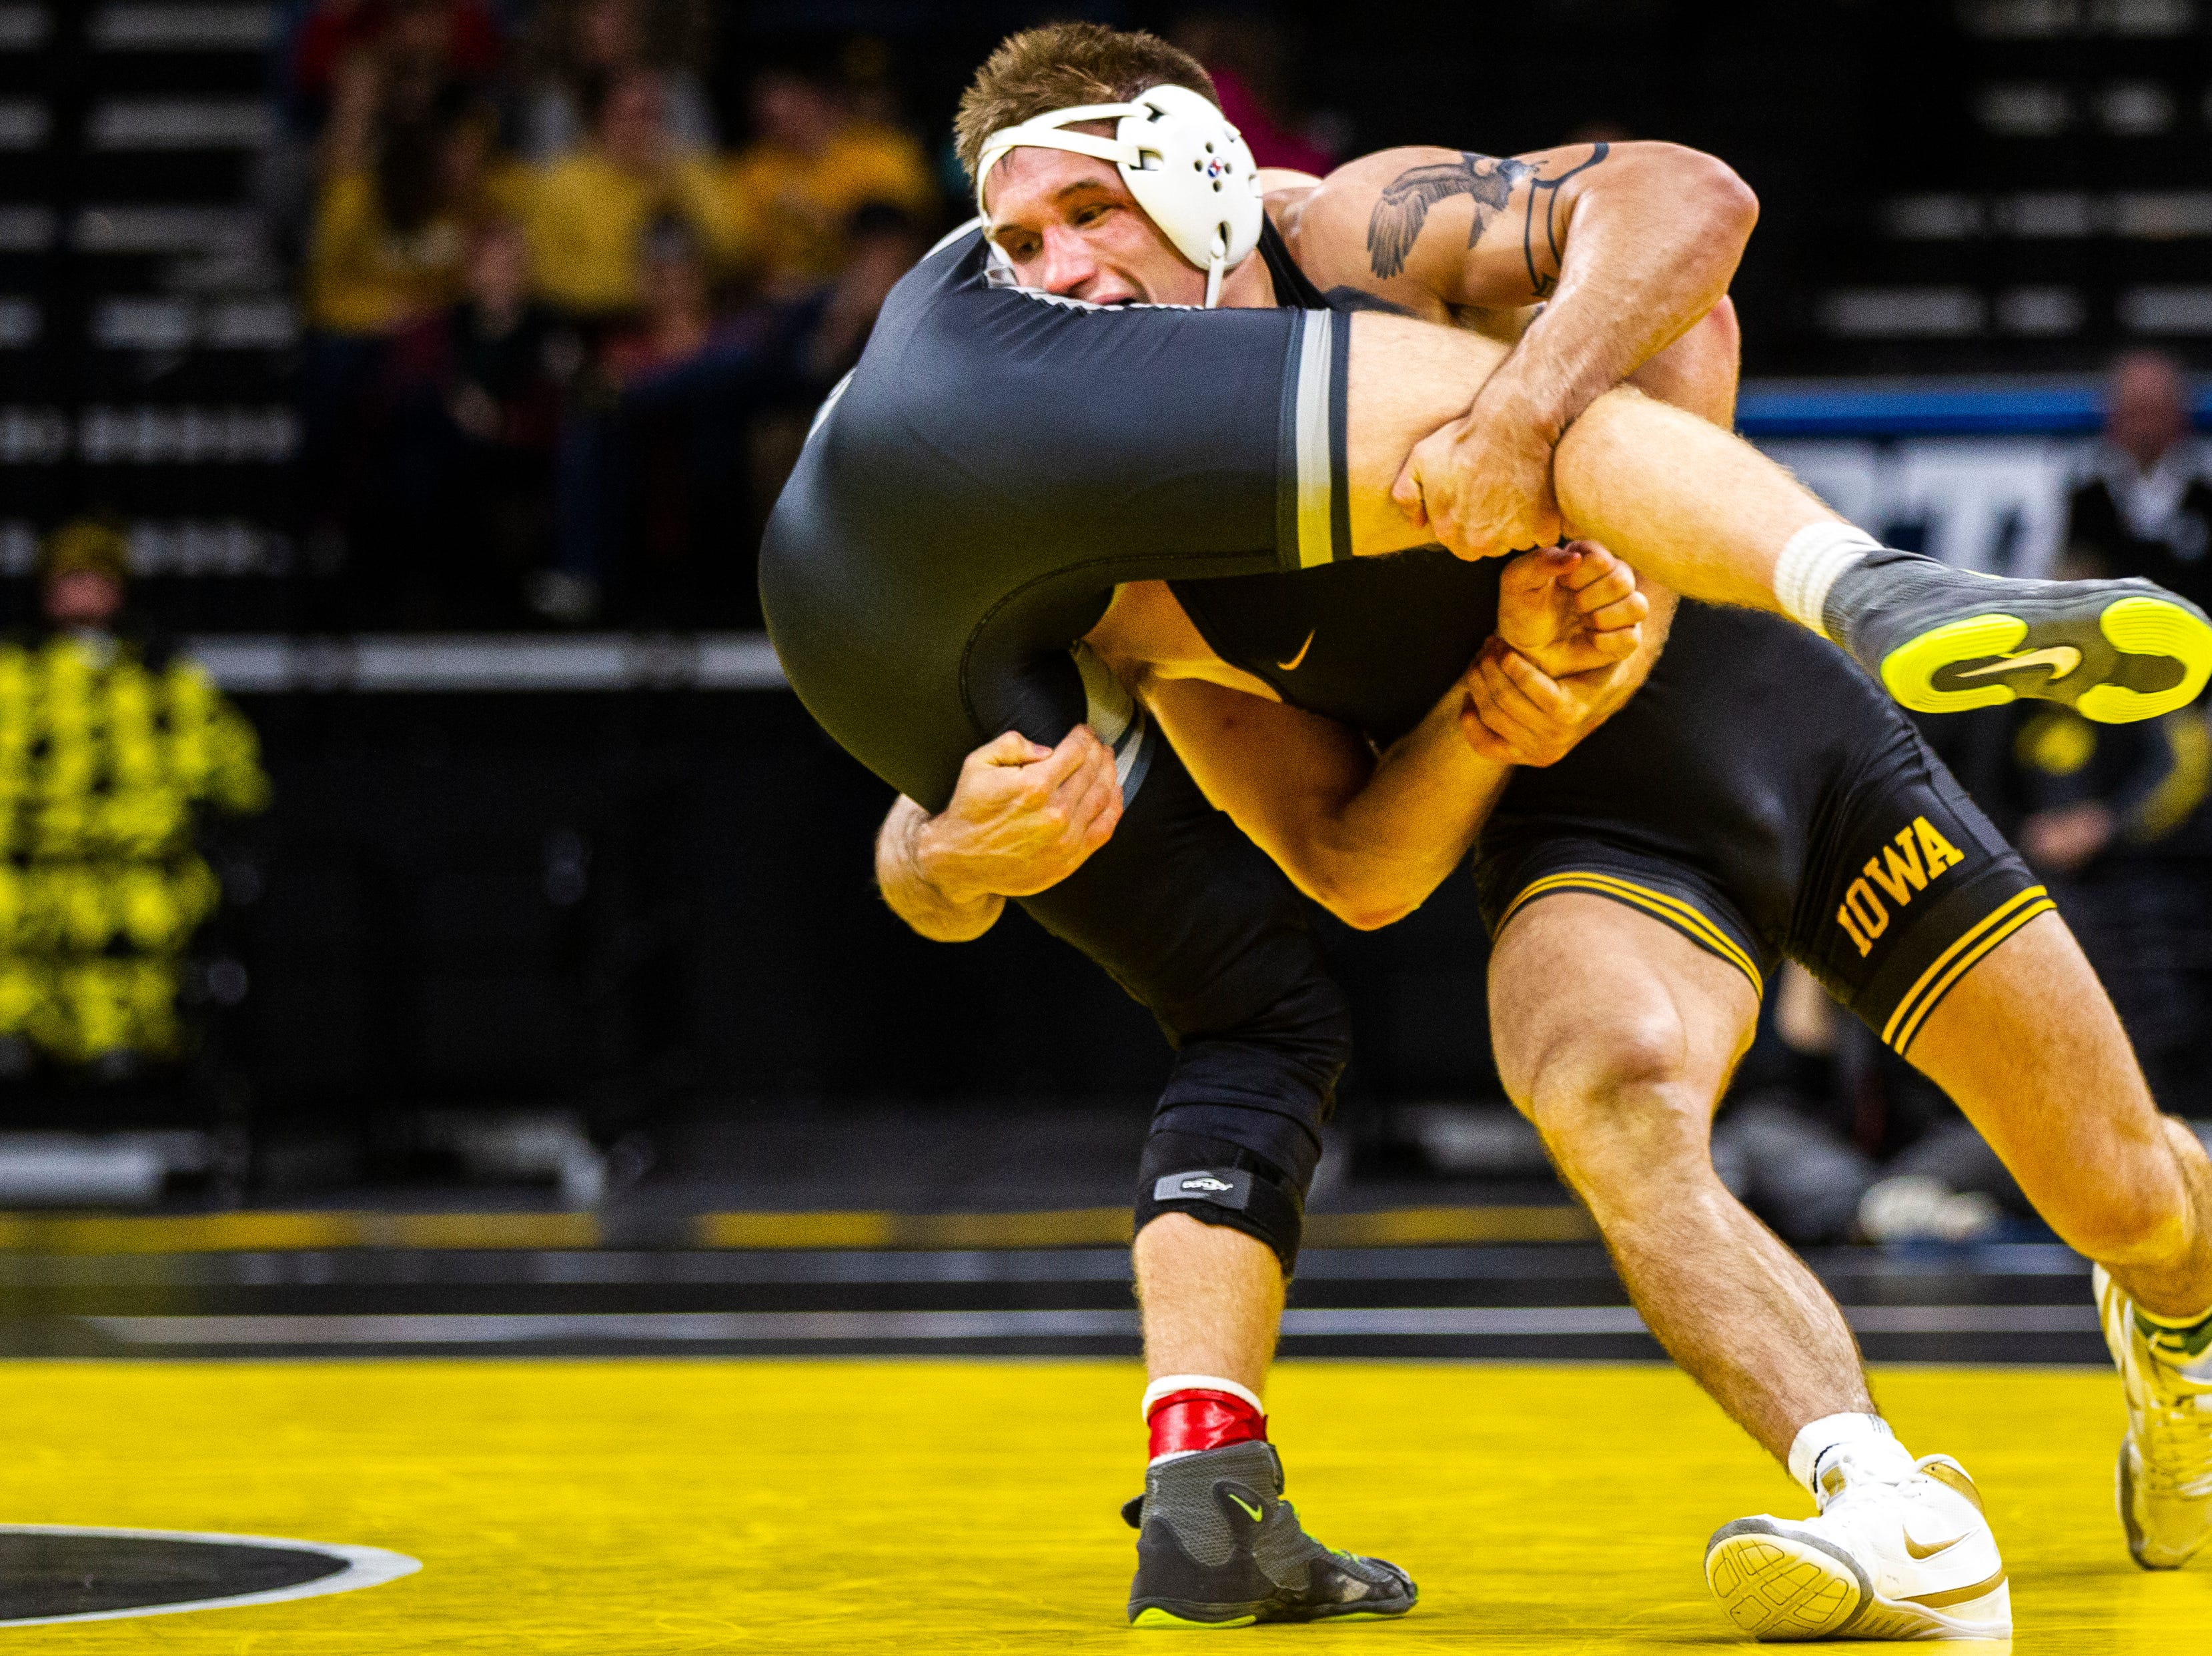 Iowa's Cash Wilcke (right) wrestles Purdue's Max Lyon at 184 during a Big Ten Conference NCAA wrestling dual on Saturday, Nov. 24, 2018, at Carver-Hawkeye Arena in Iowa City.